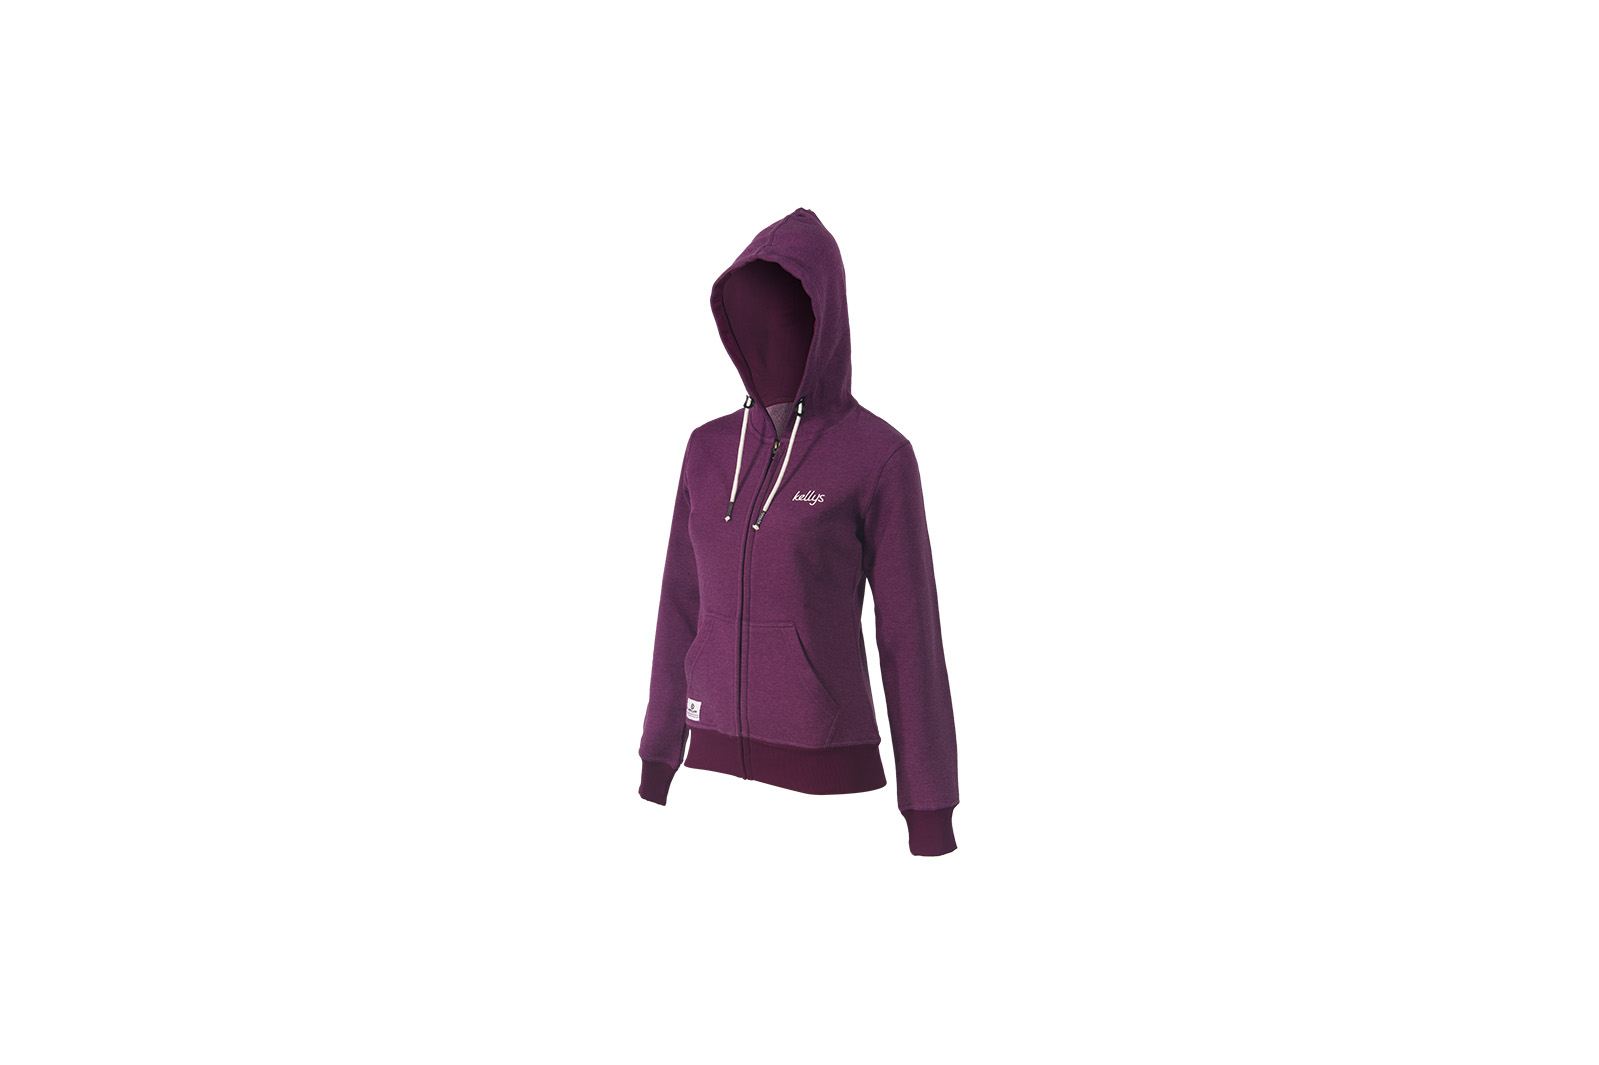 Sweatjacke KELLYS WOMEN´S MELANGE purple - L - Mile-Multisport